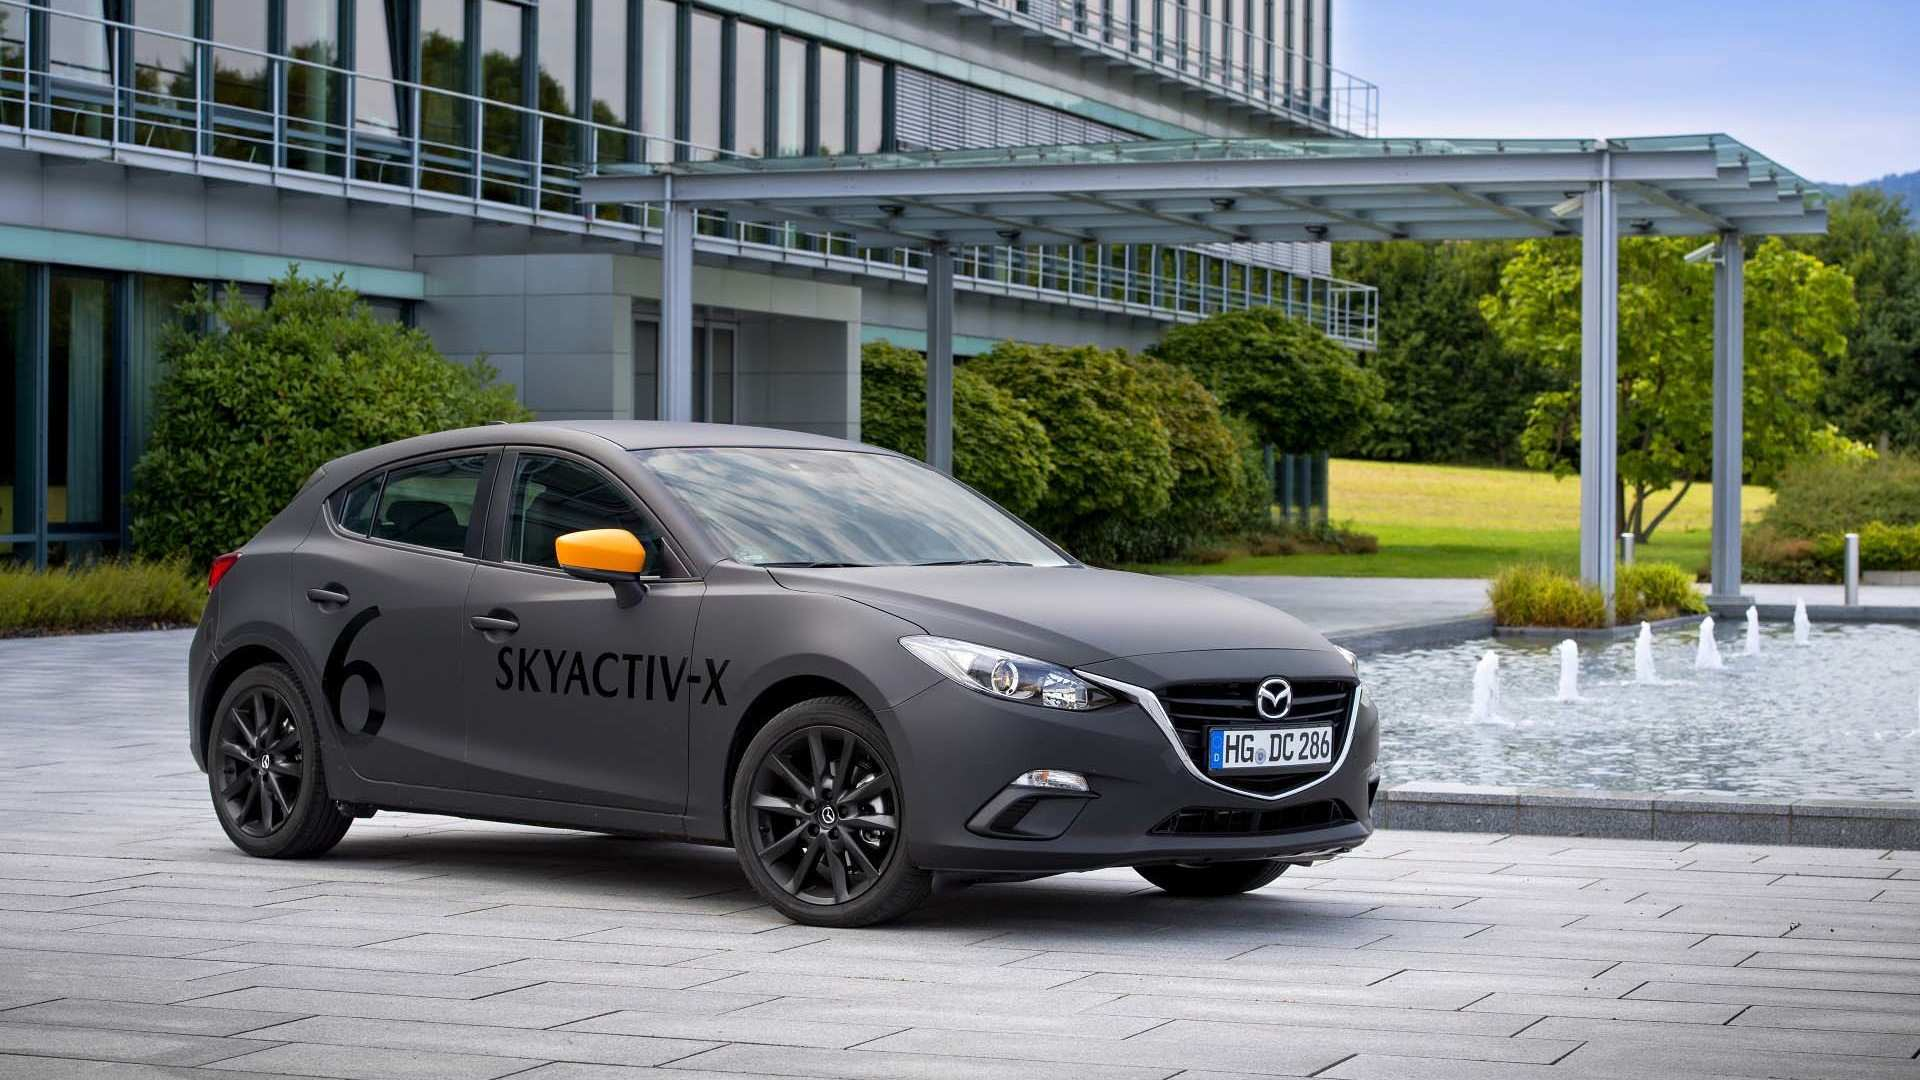 75 The Best 2020 Mazda 3 Pictures